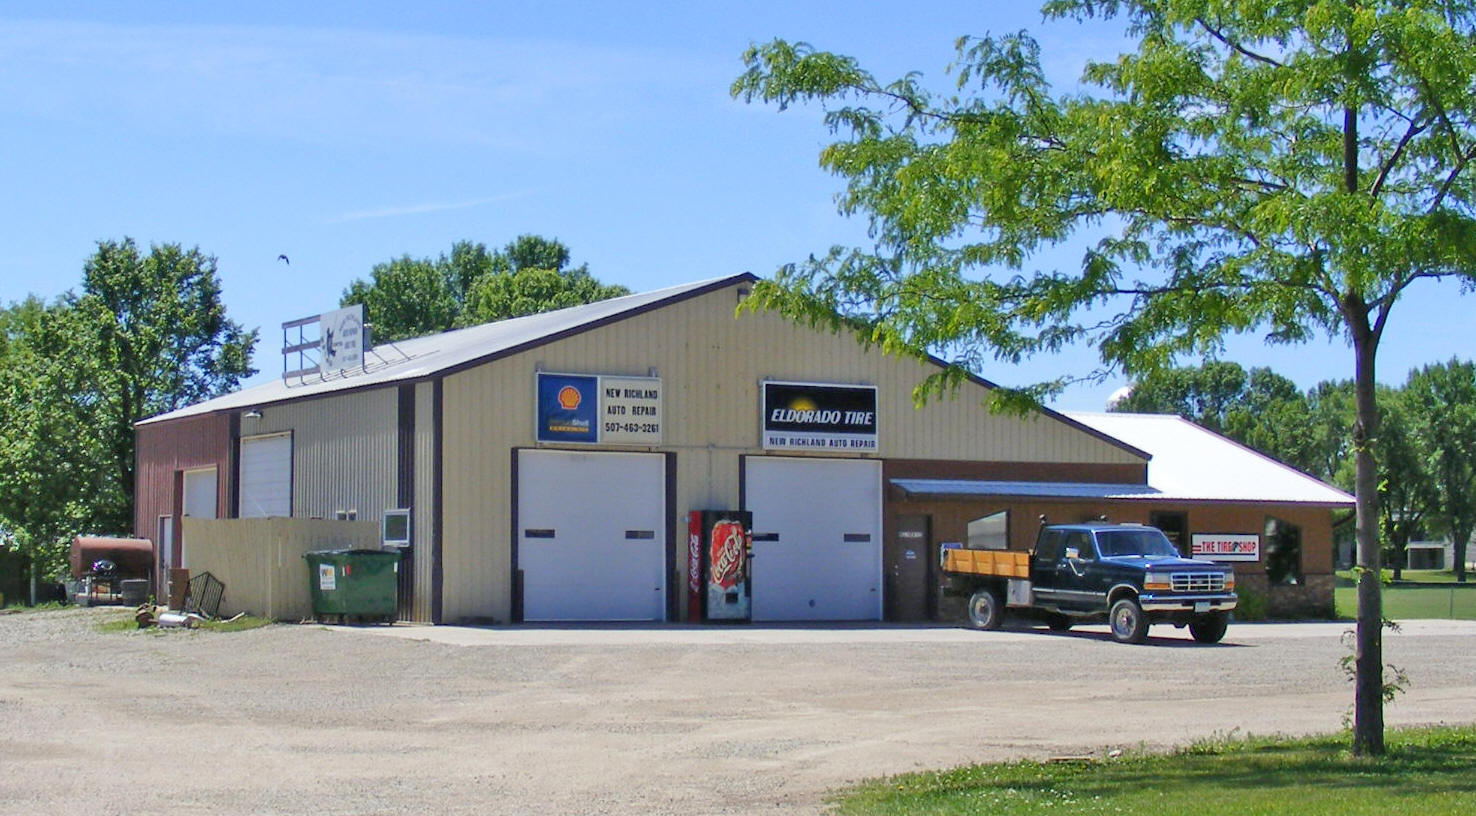 new richland 964 jobs available near new richland, mn on indeedcom kennel assistant at clarks grove, conductor at canadian pacific, human resources generalist at steele county and more.